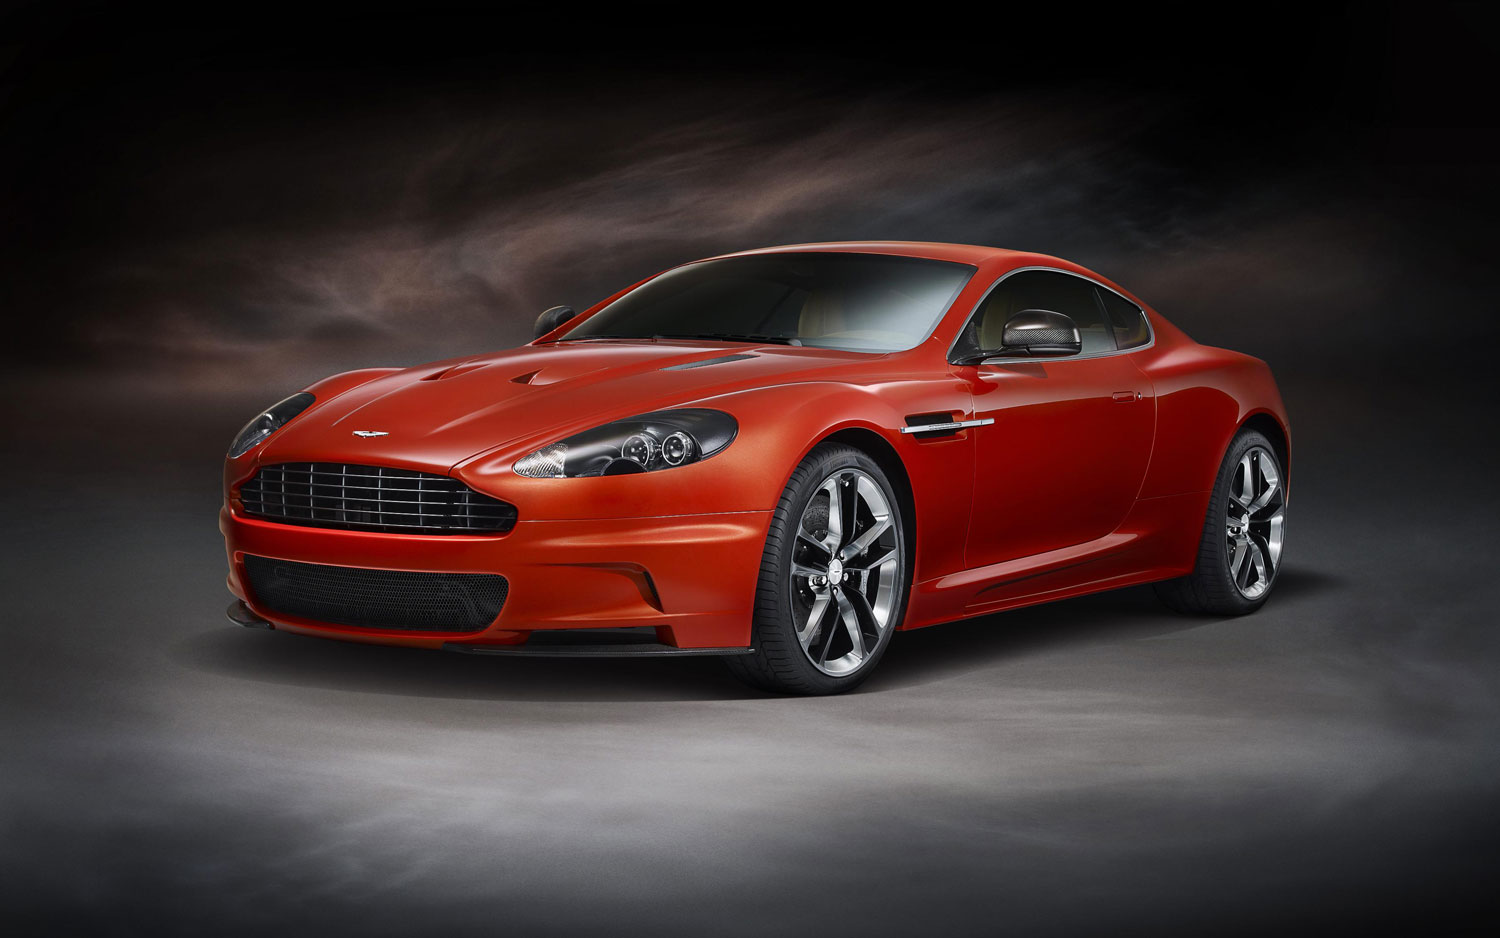 Aston Martin DBS Carbon Fiber Edtion Flame Orange Front Left1